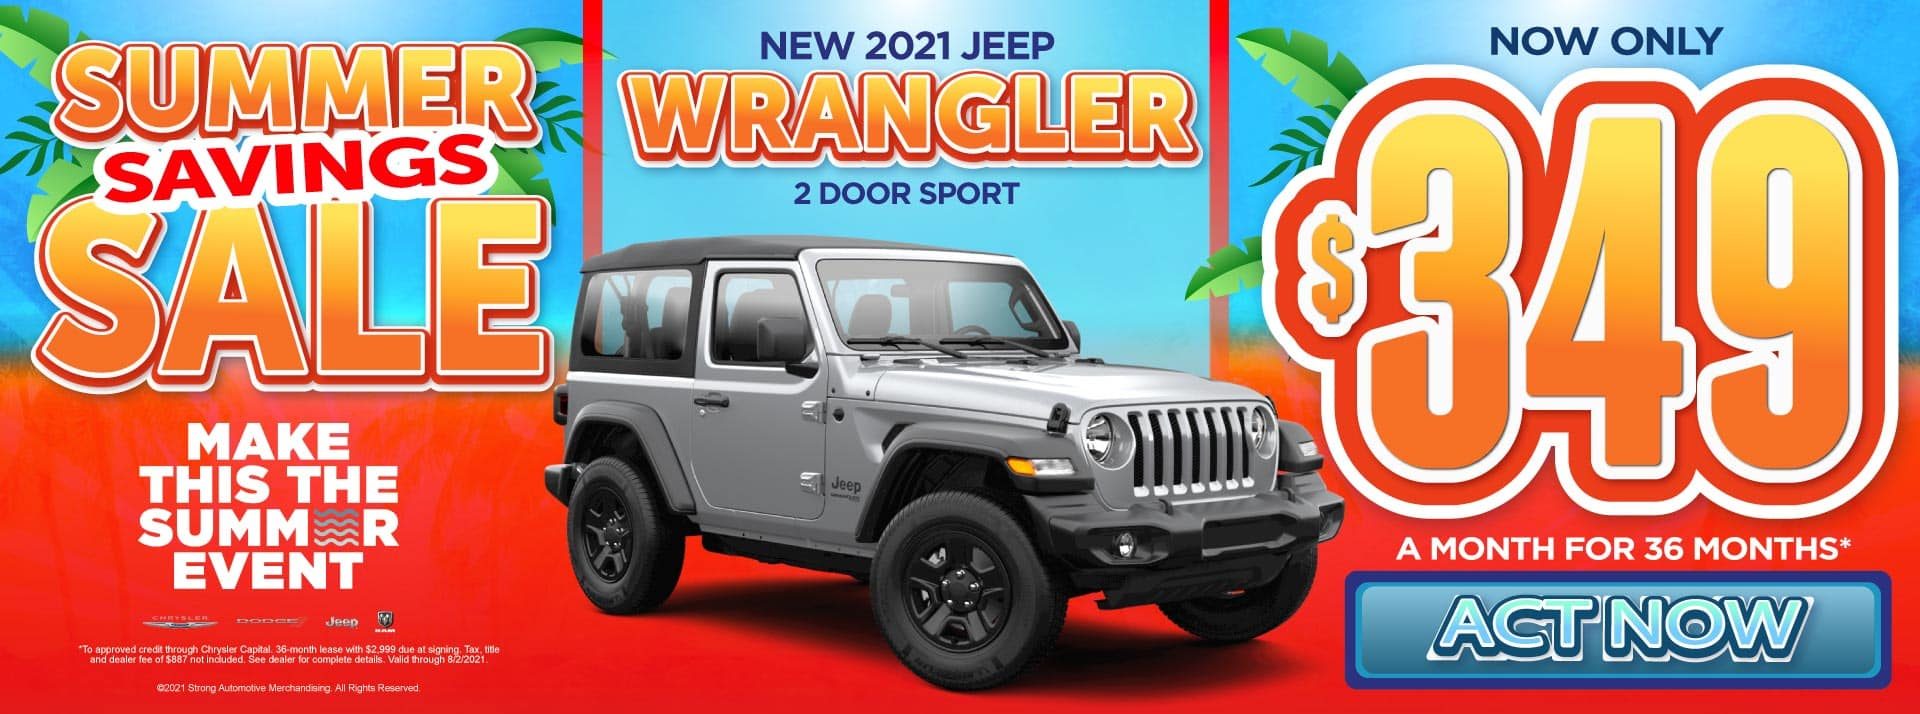 New 2021 Jeep Wrangler - Now only $349 a month for 36 months - Act Now